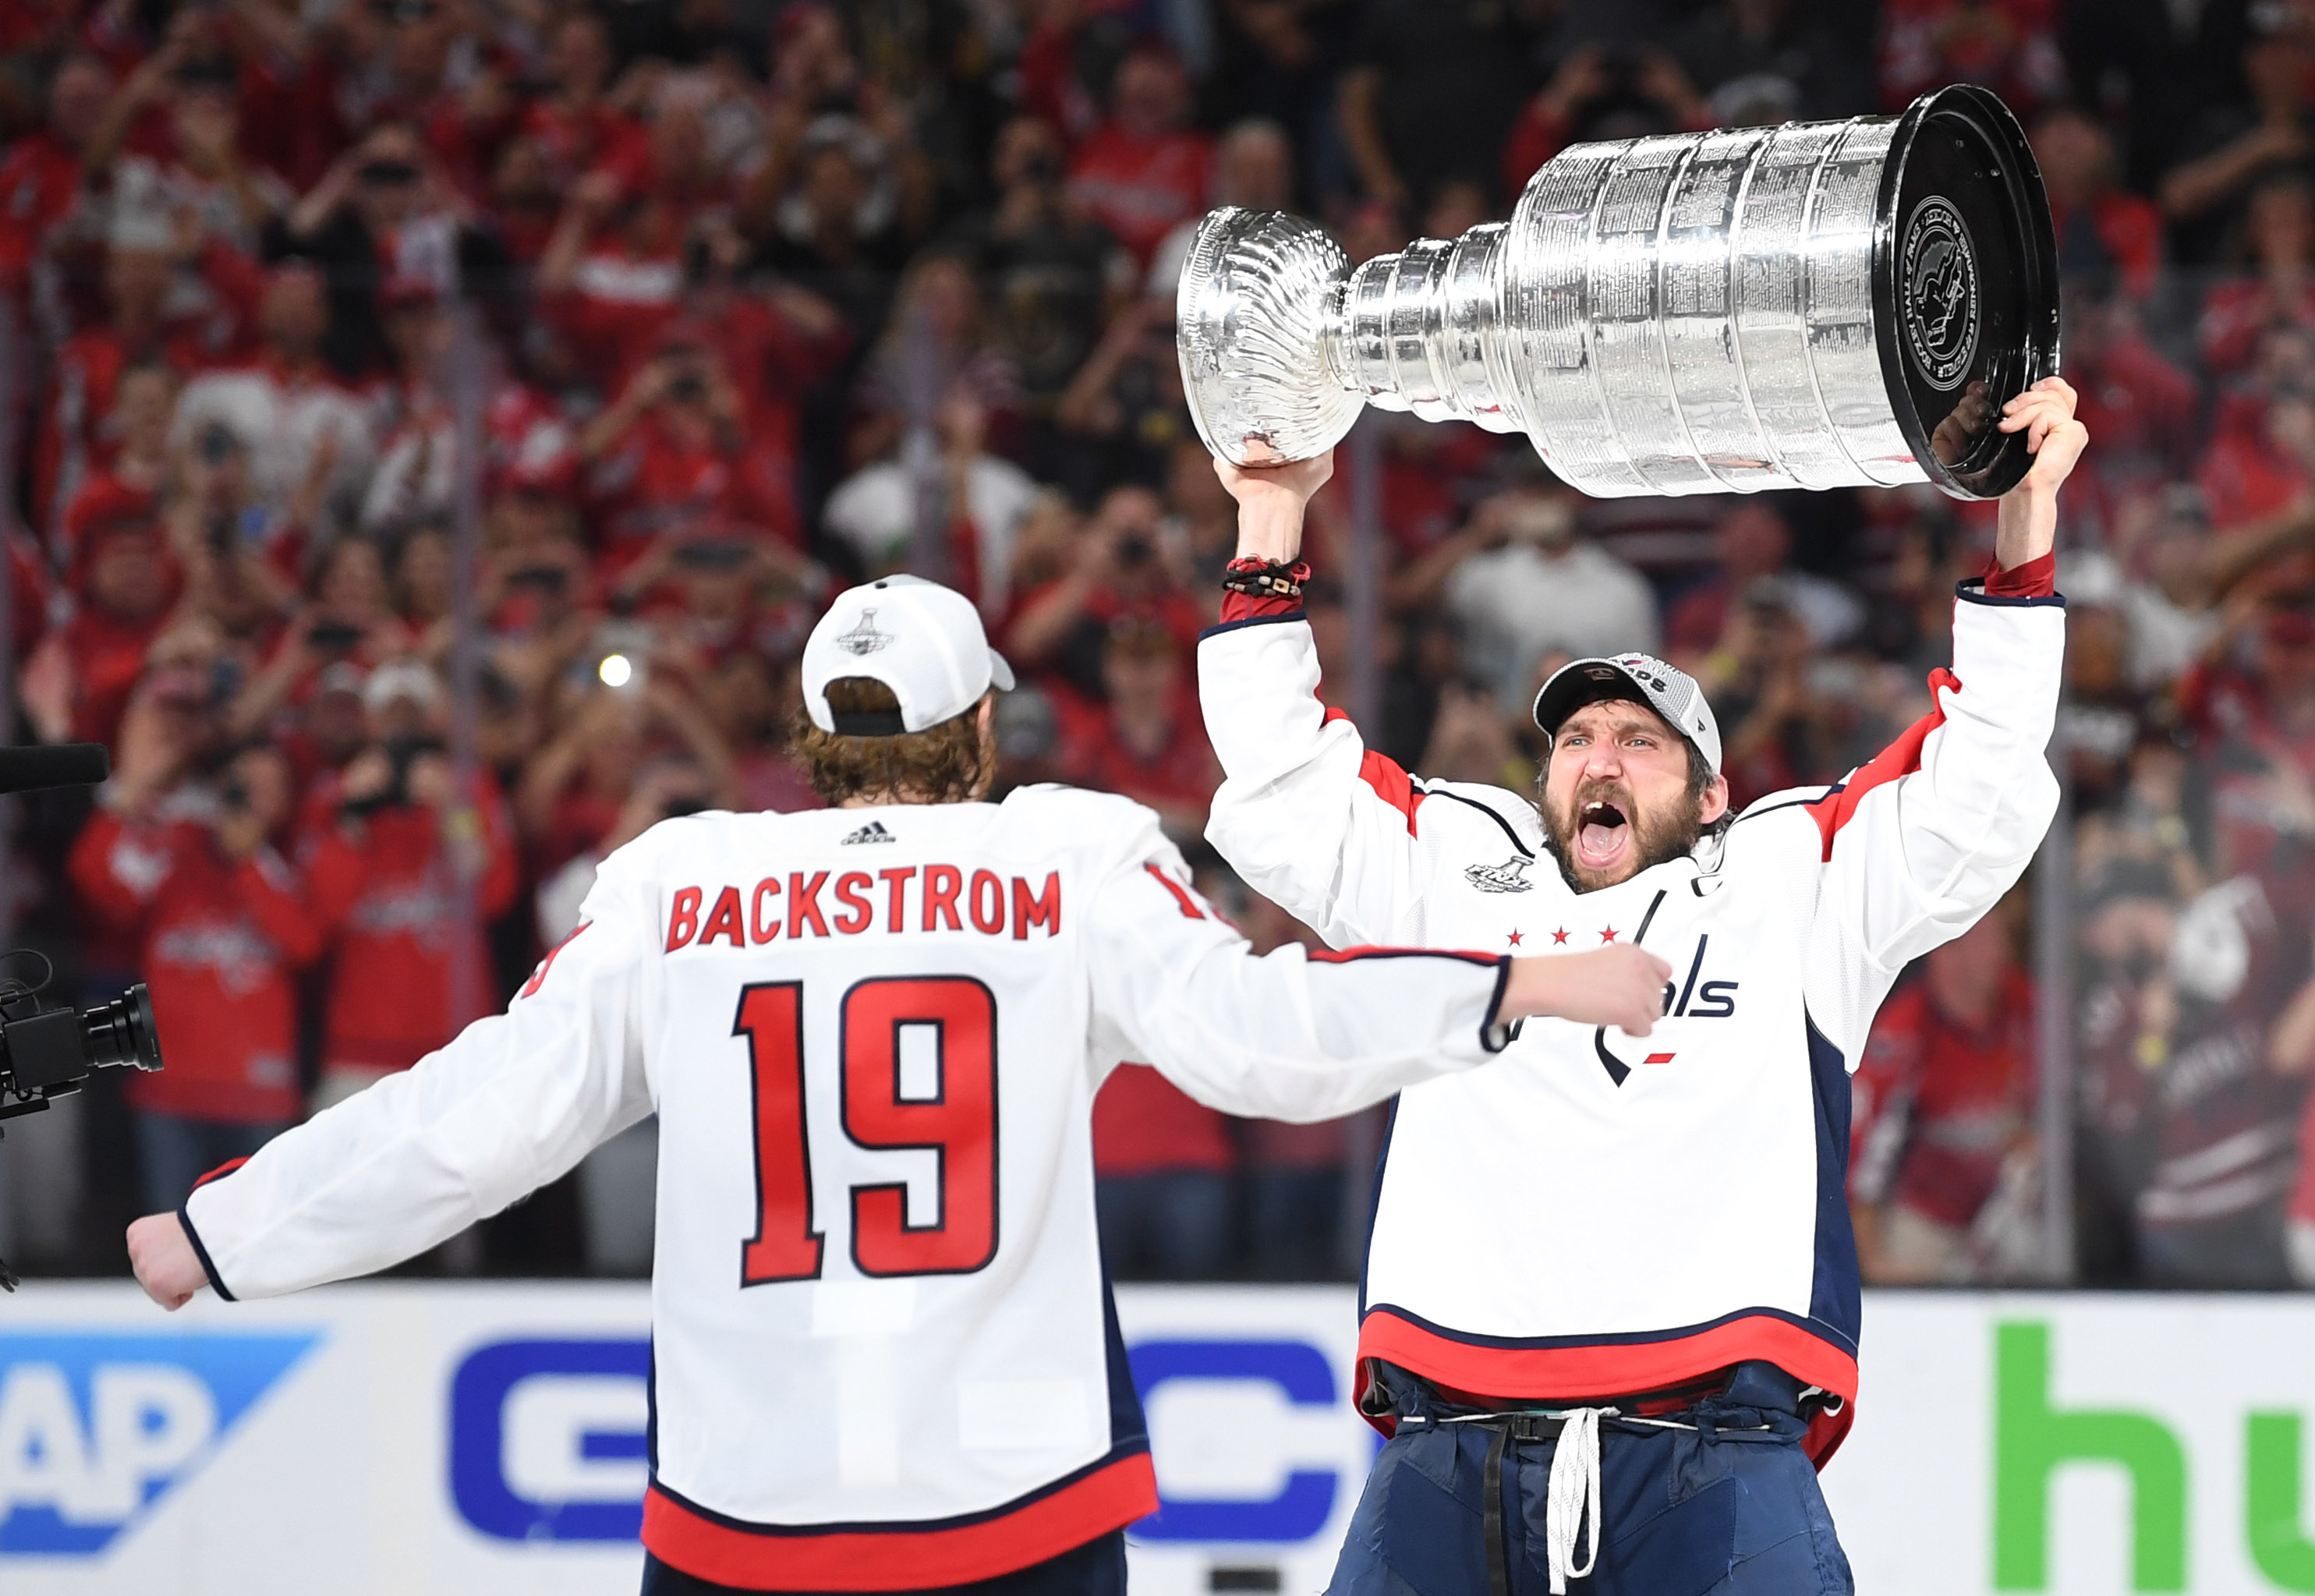 Jun 7, 2018; Las Vegas, NV, USA; Washington Capitals left wing Alex Ovechkin (8) passes the Stanley Cup to center Nicklas Backstrom (19) after defeating the Vegas Golden Knights in game five of the 2018 Stanley Cup Final at T-Mobile Arena. Mandatory Credit: Stephen R. Sylvanie-USA TODAY Sports